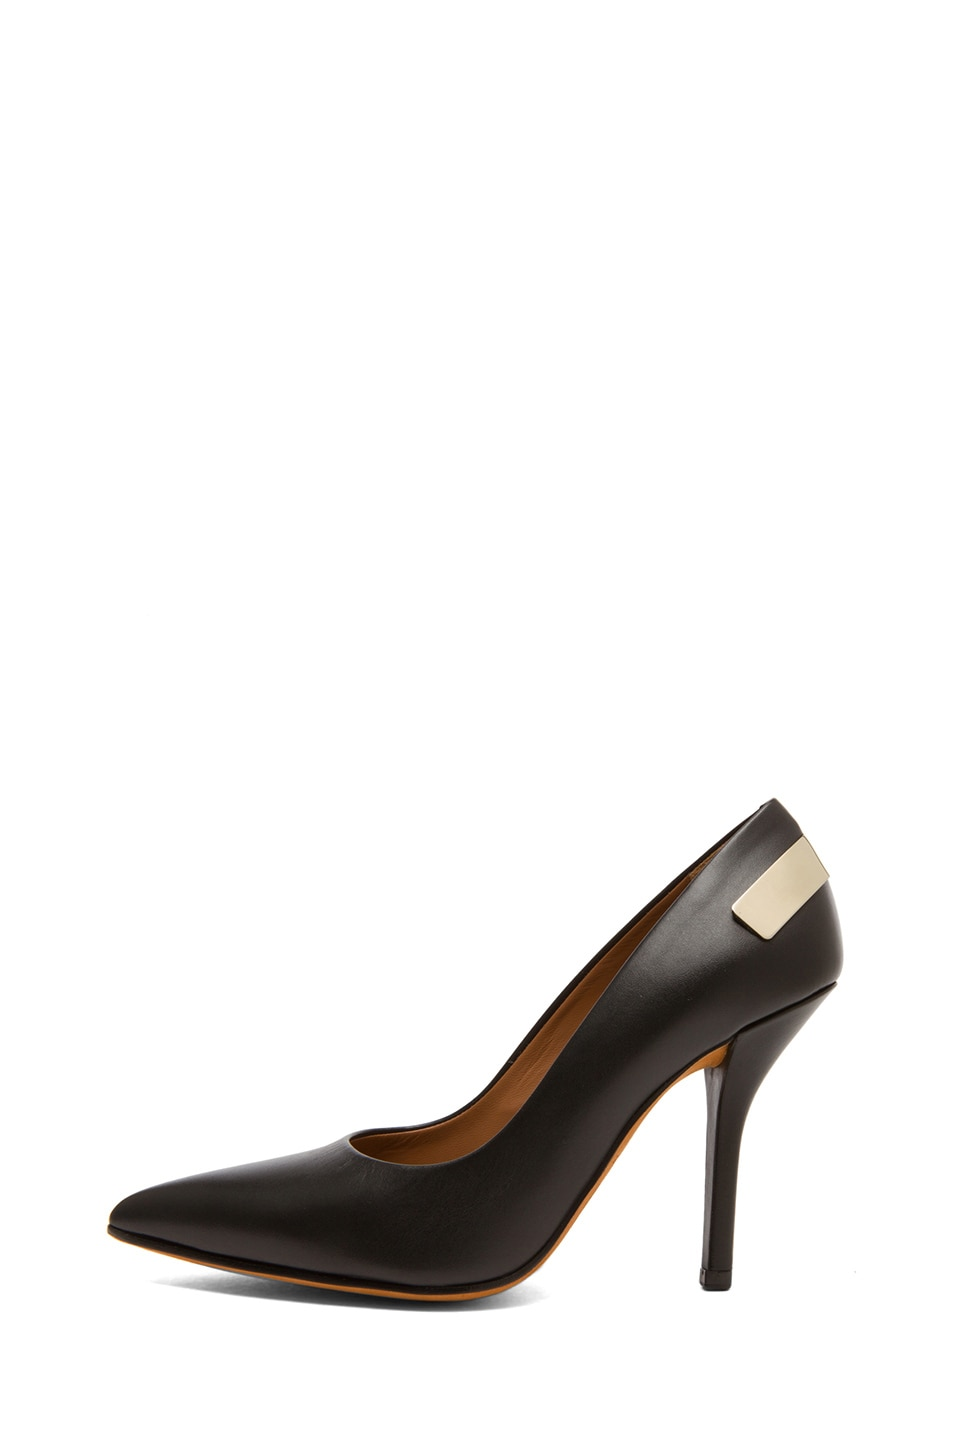 Image 1 of Givenchy Calfskin Leather Pumps in Black